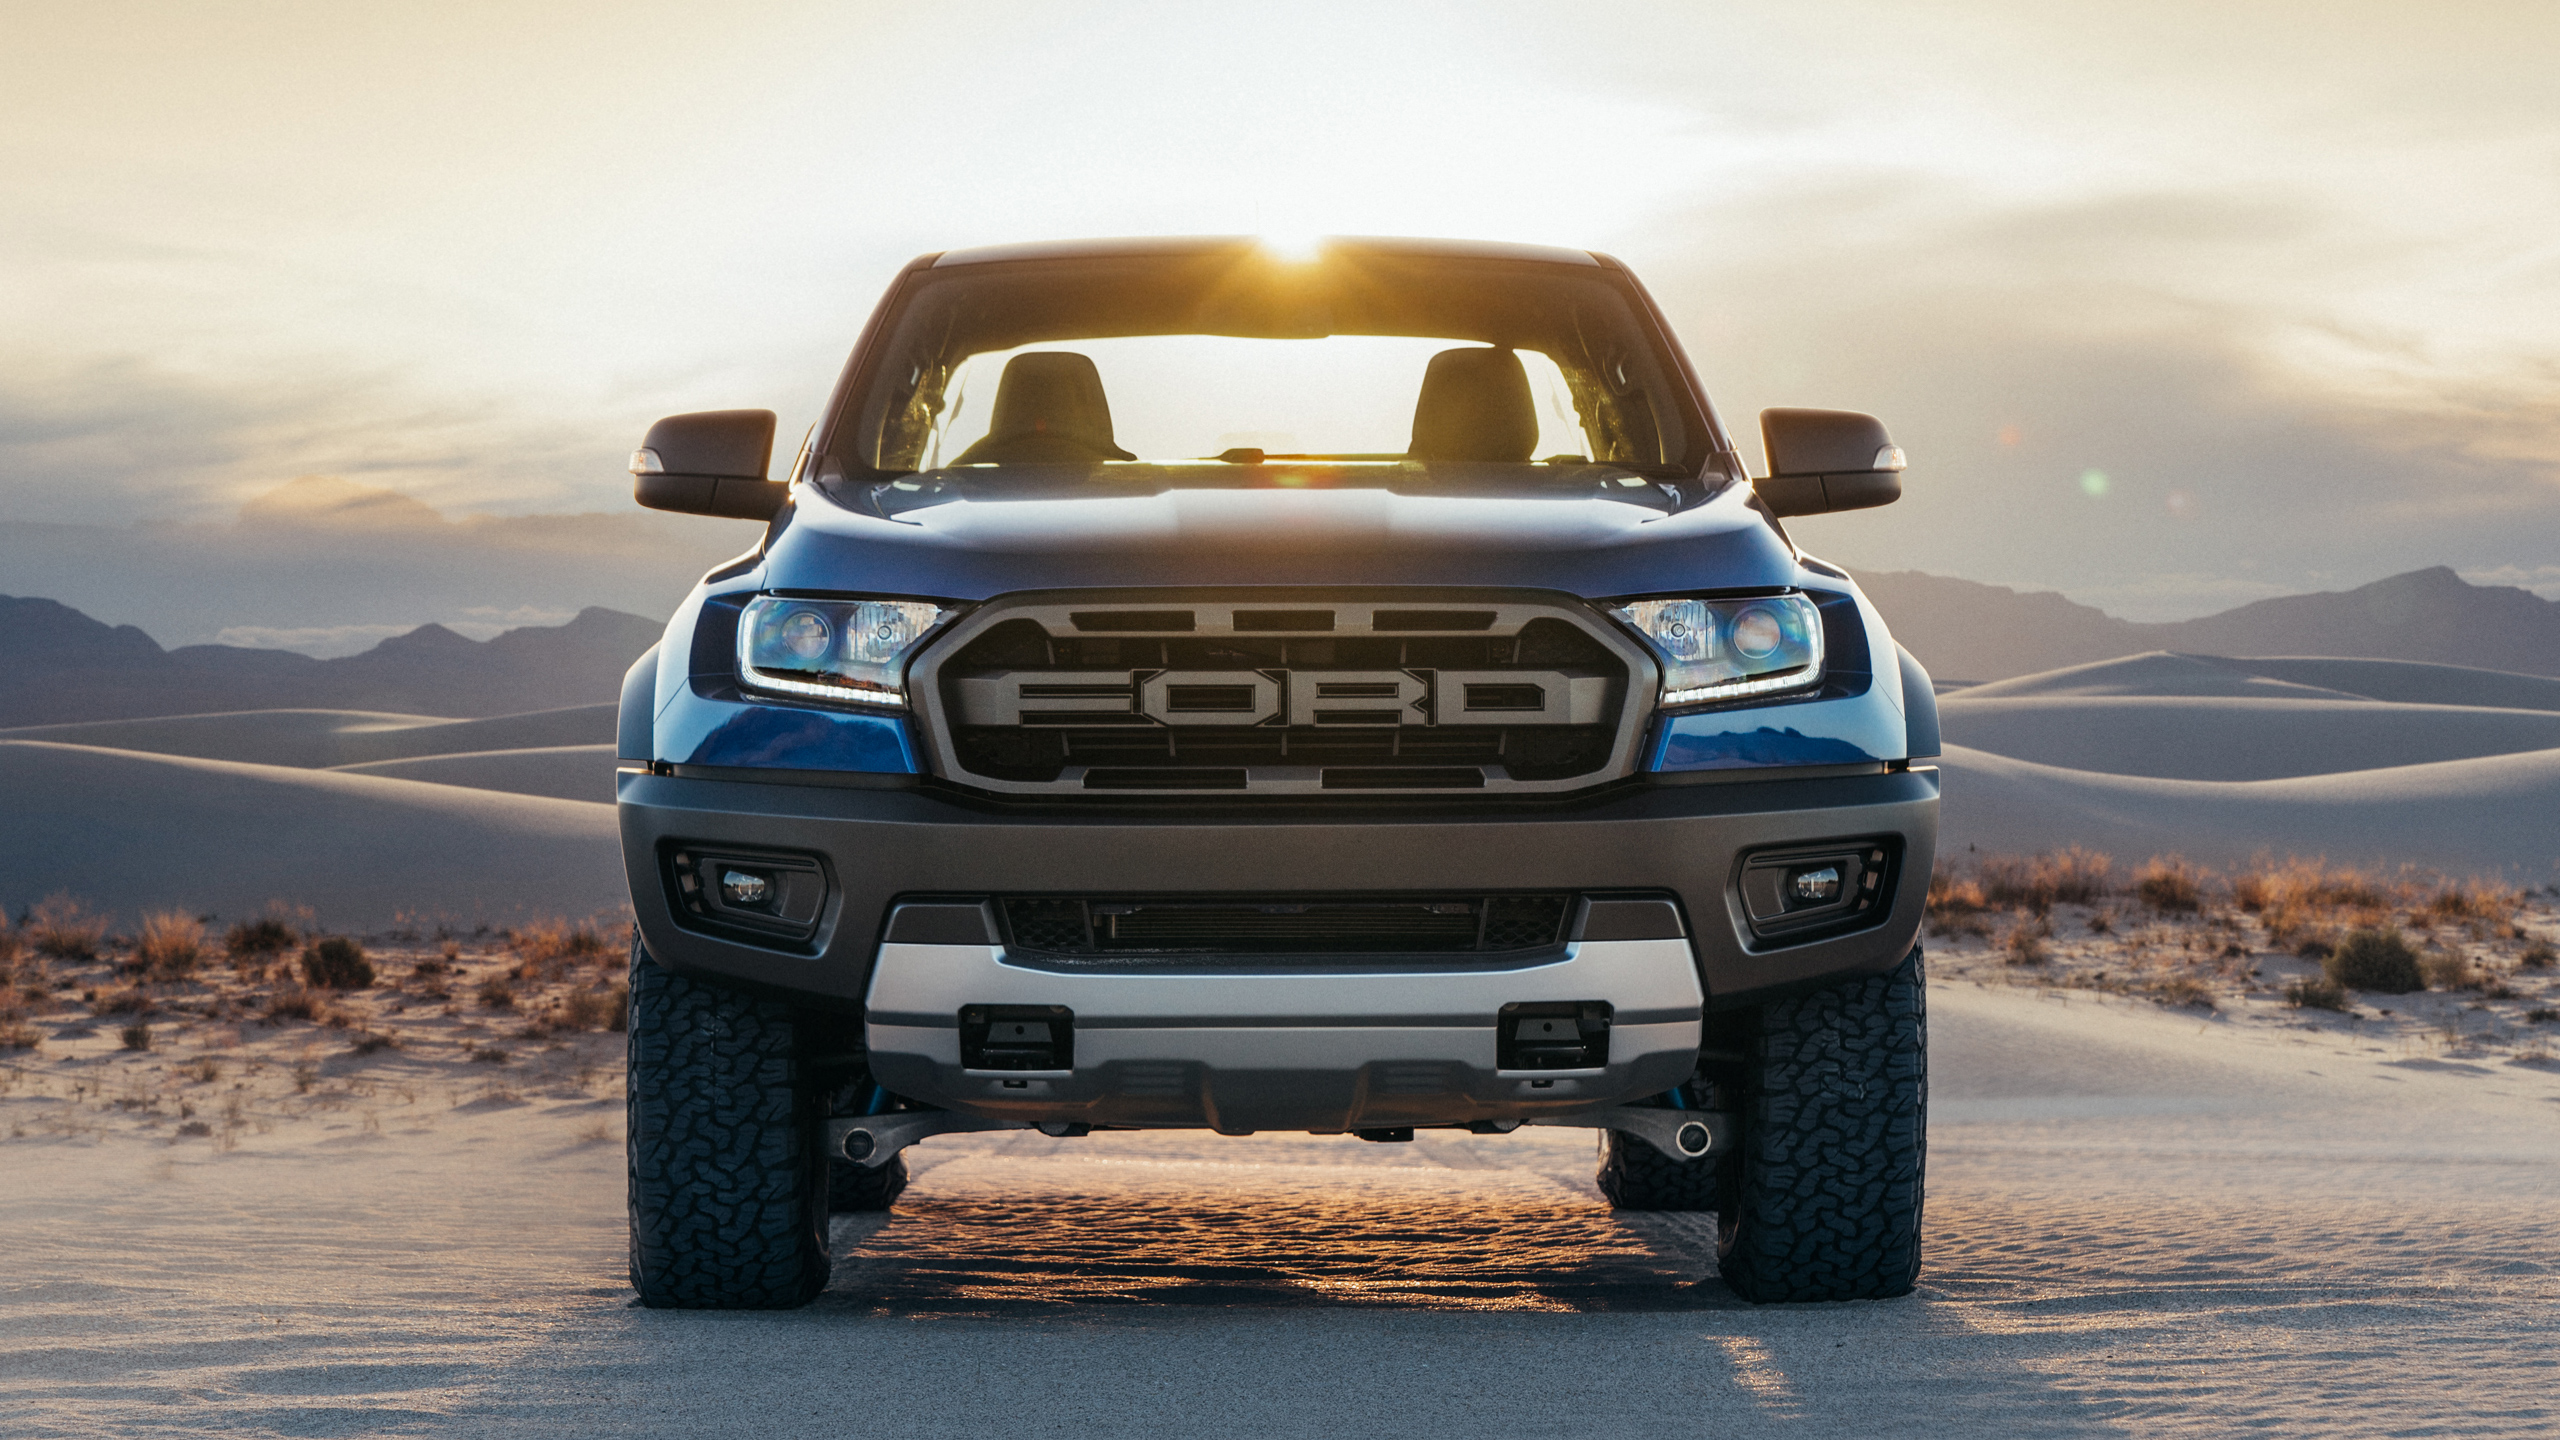 Ford Raptor Front View Hd Wallpaper 64937 2560x1440px